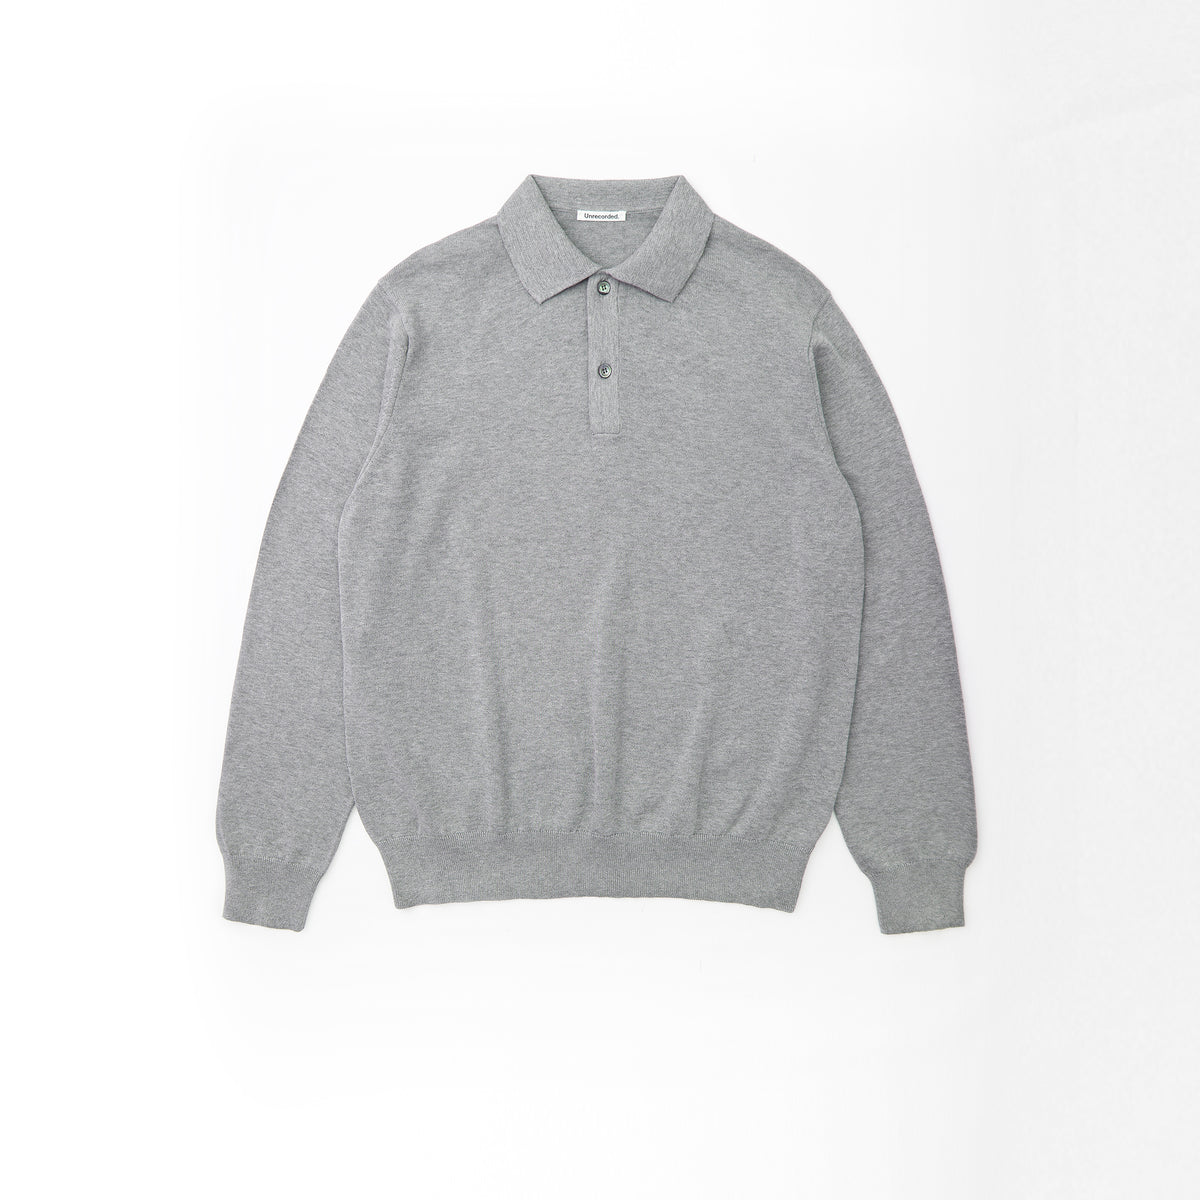 Knitted Polo Shirt Grey - Unrecorded